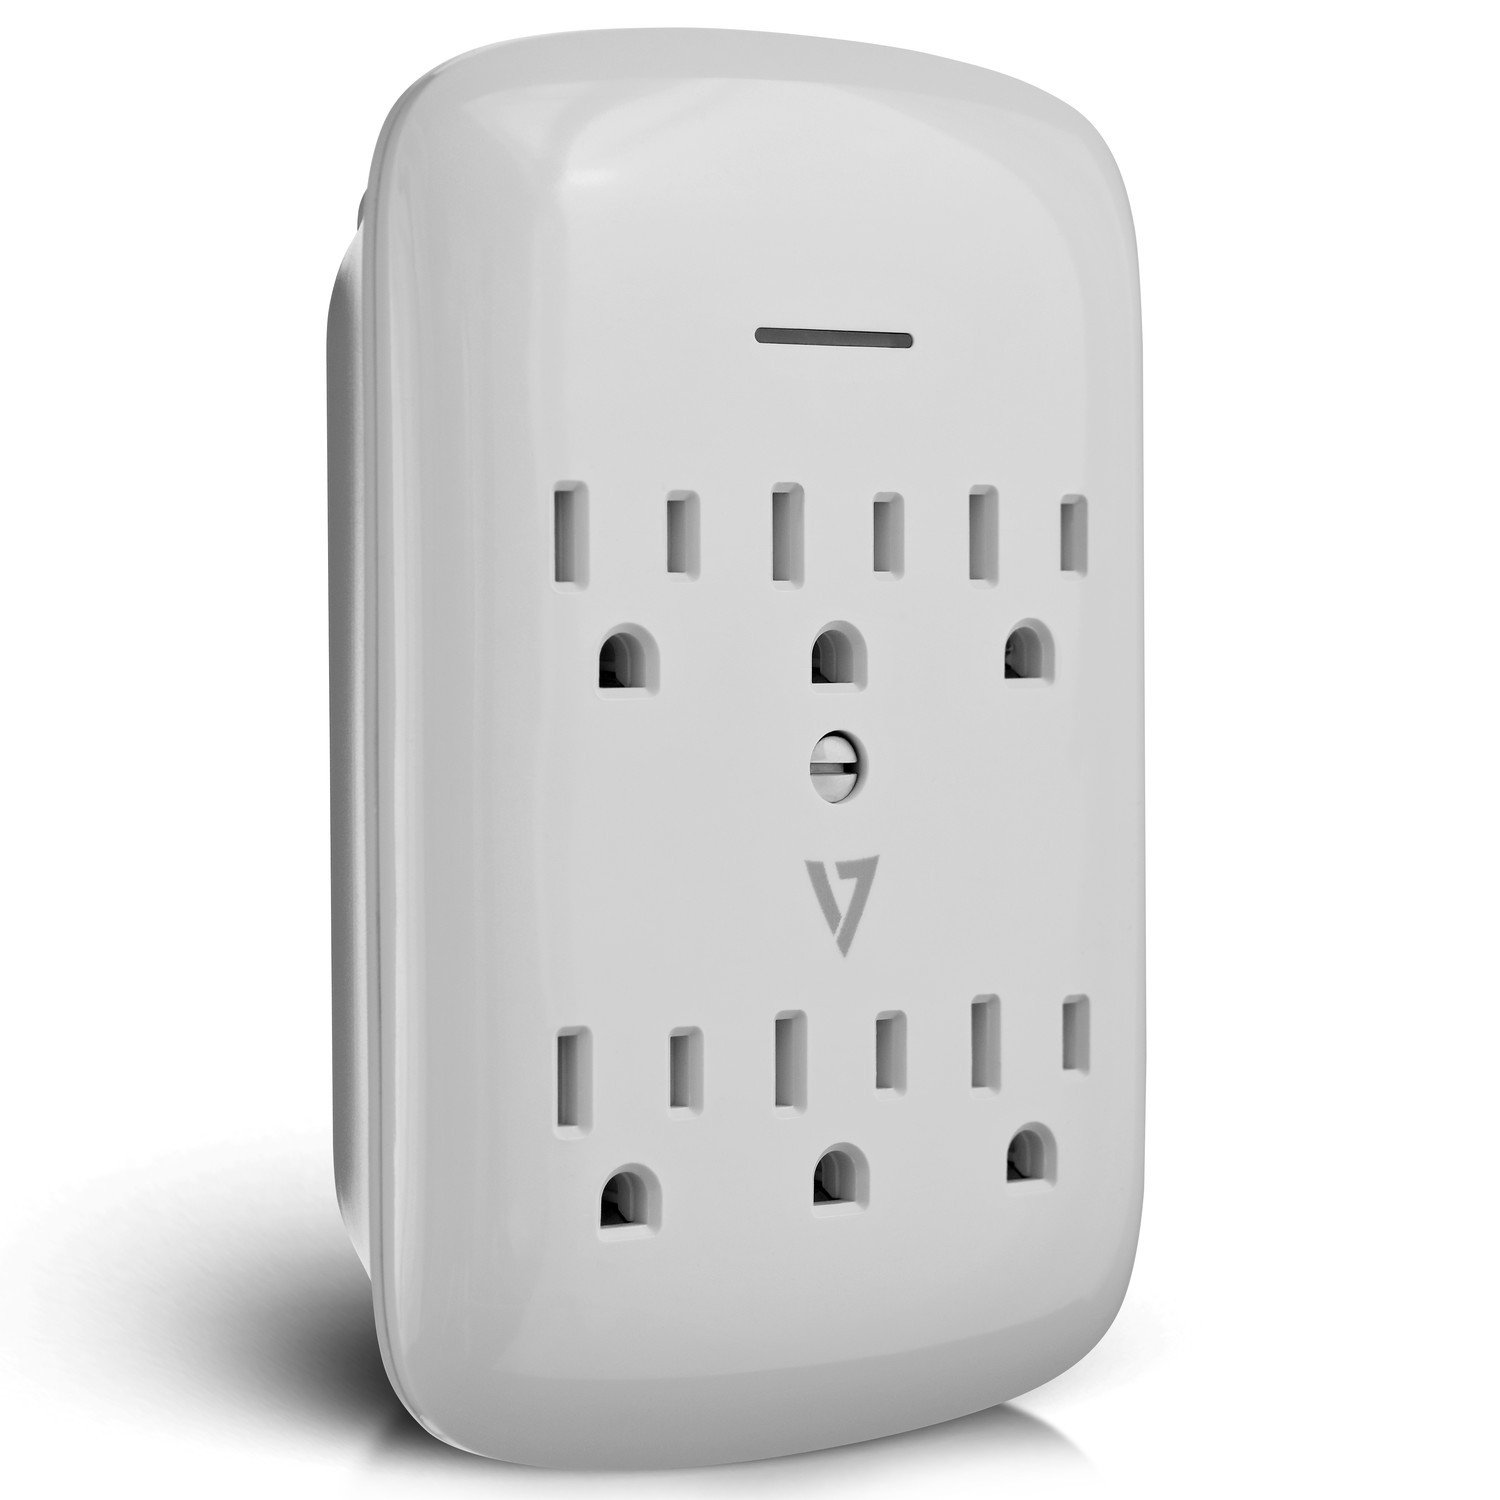 V7 SA06WALL-1N 6-Outlet Wall Tap Surge Protector, 1200 Joules – White